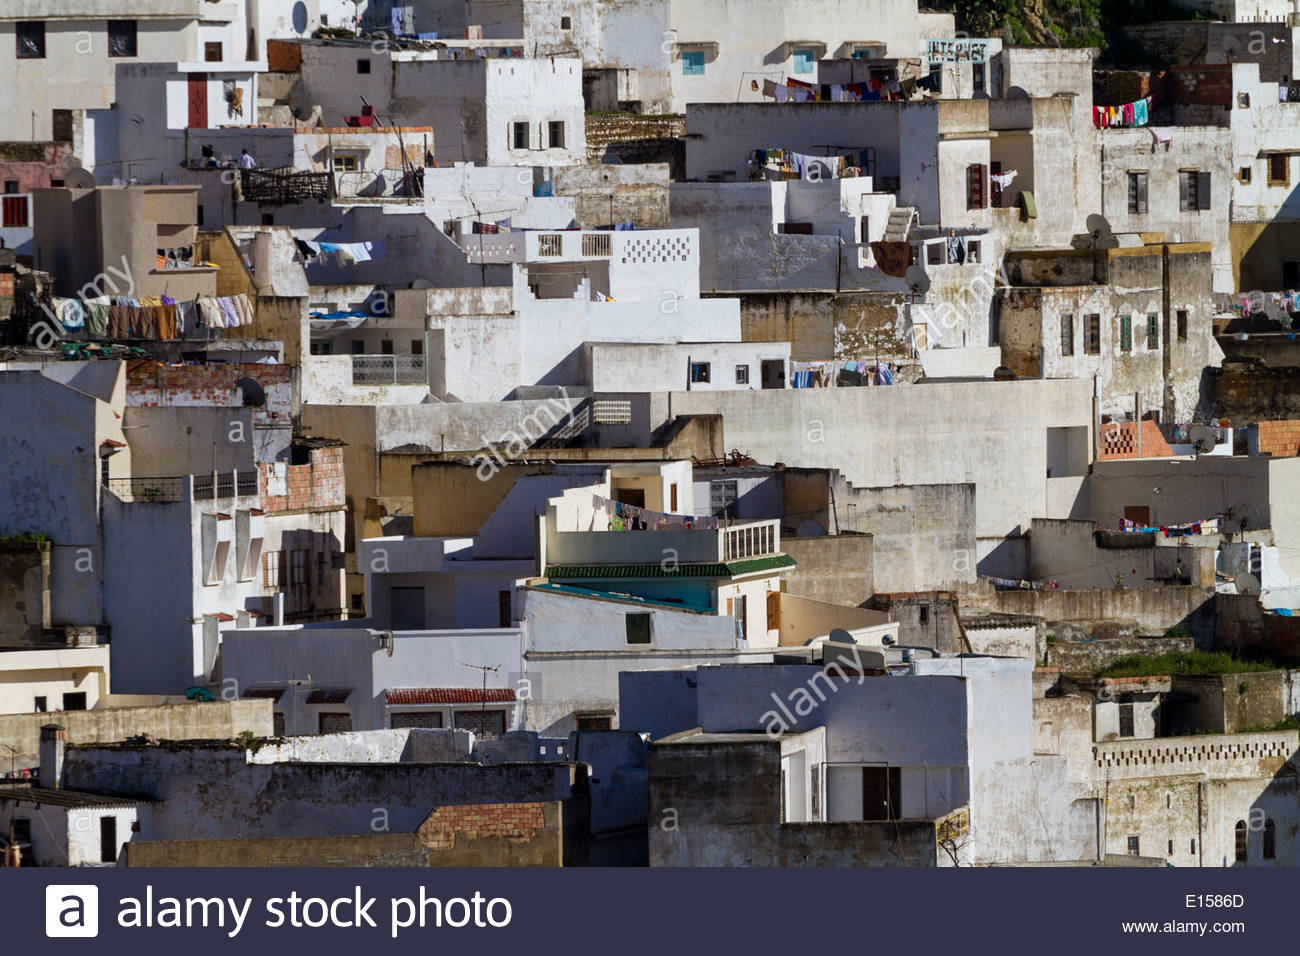 View of townscape - Morocco - Stock Image